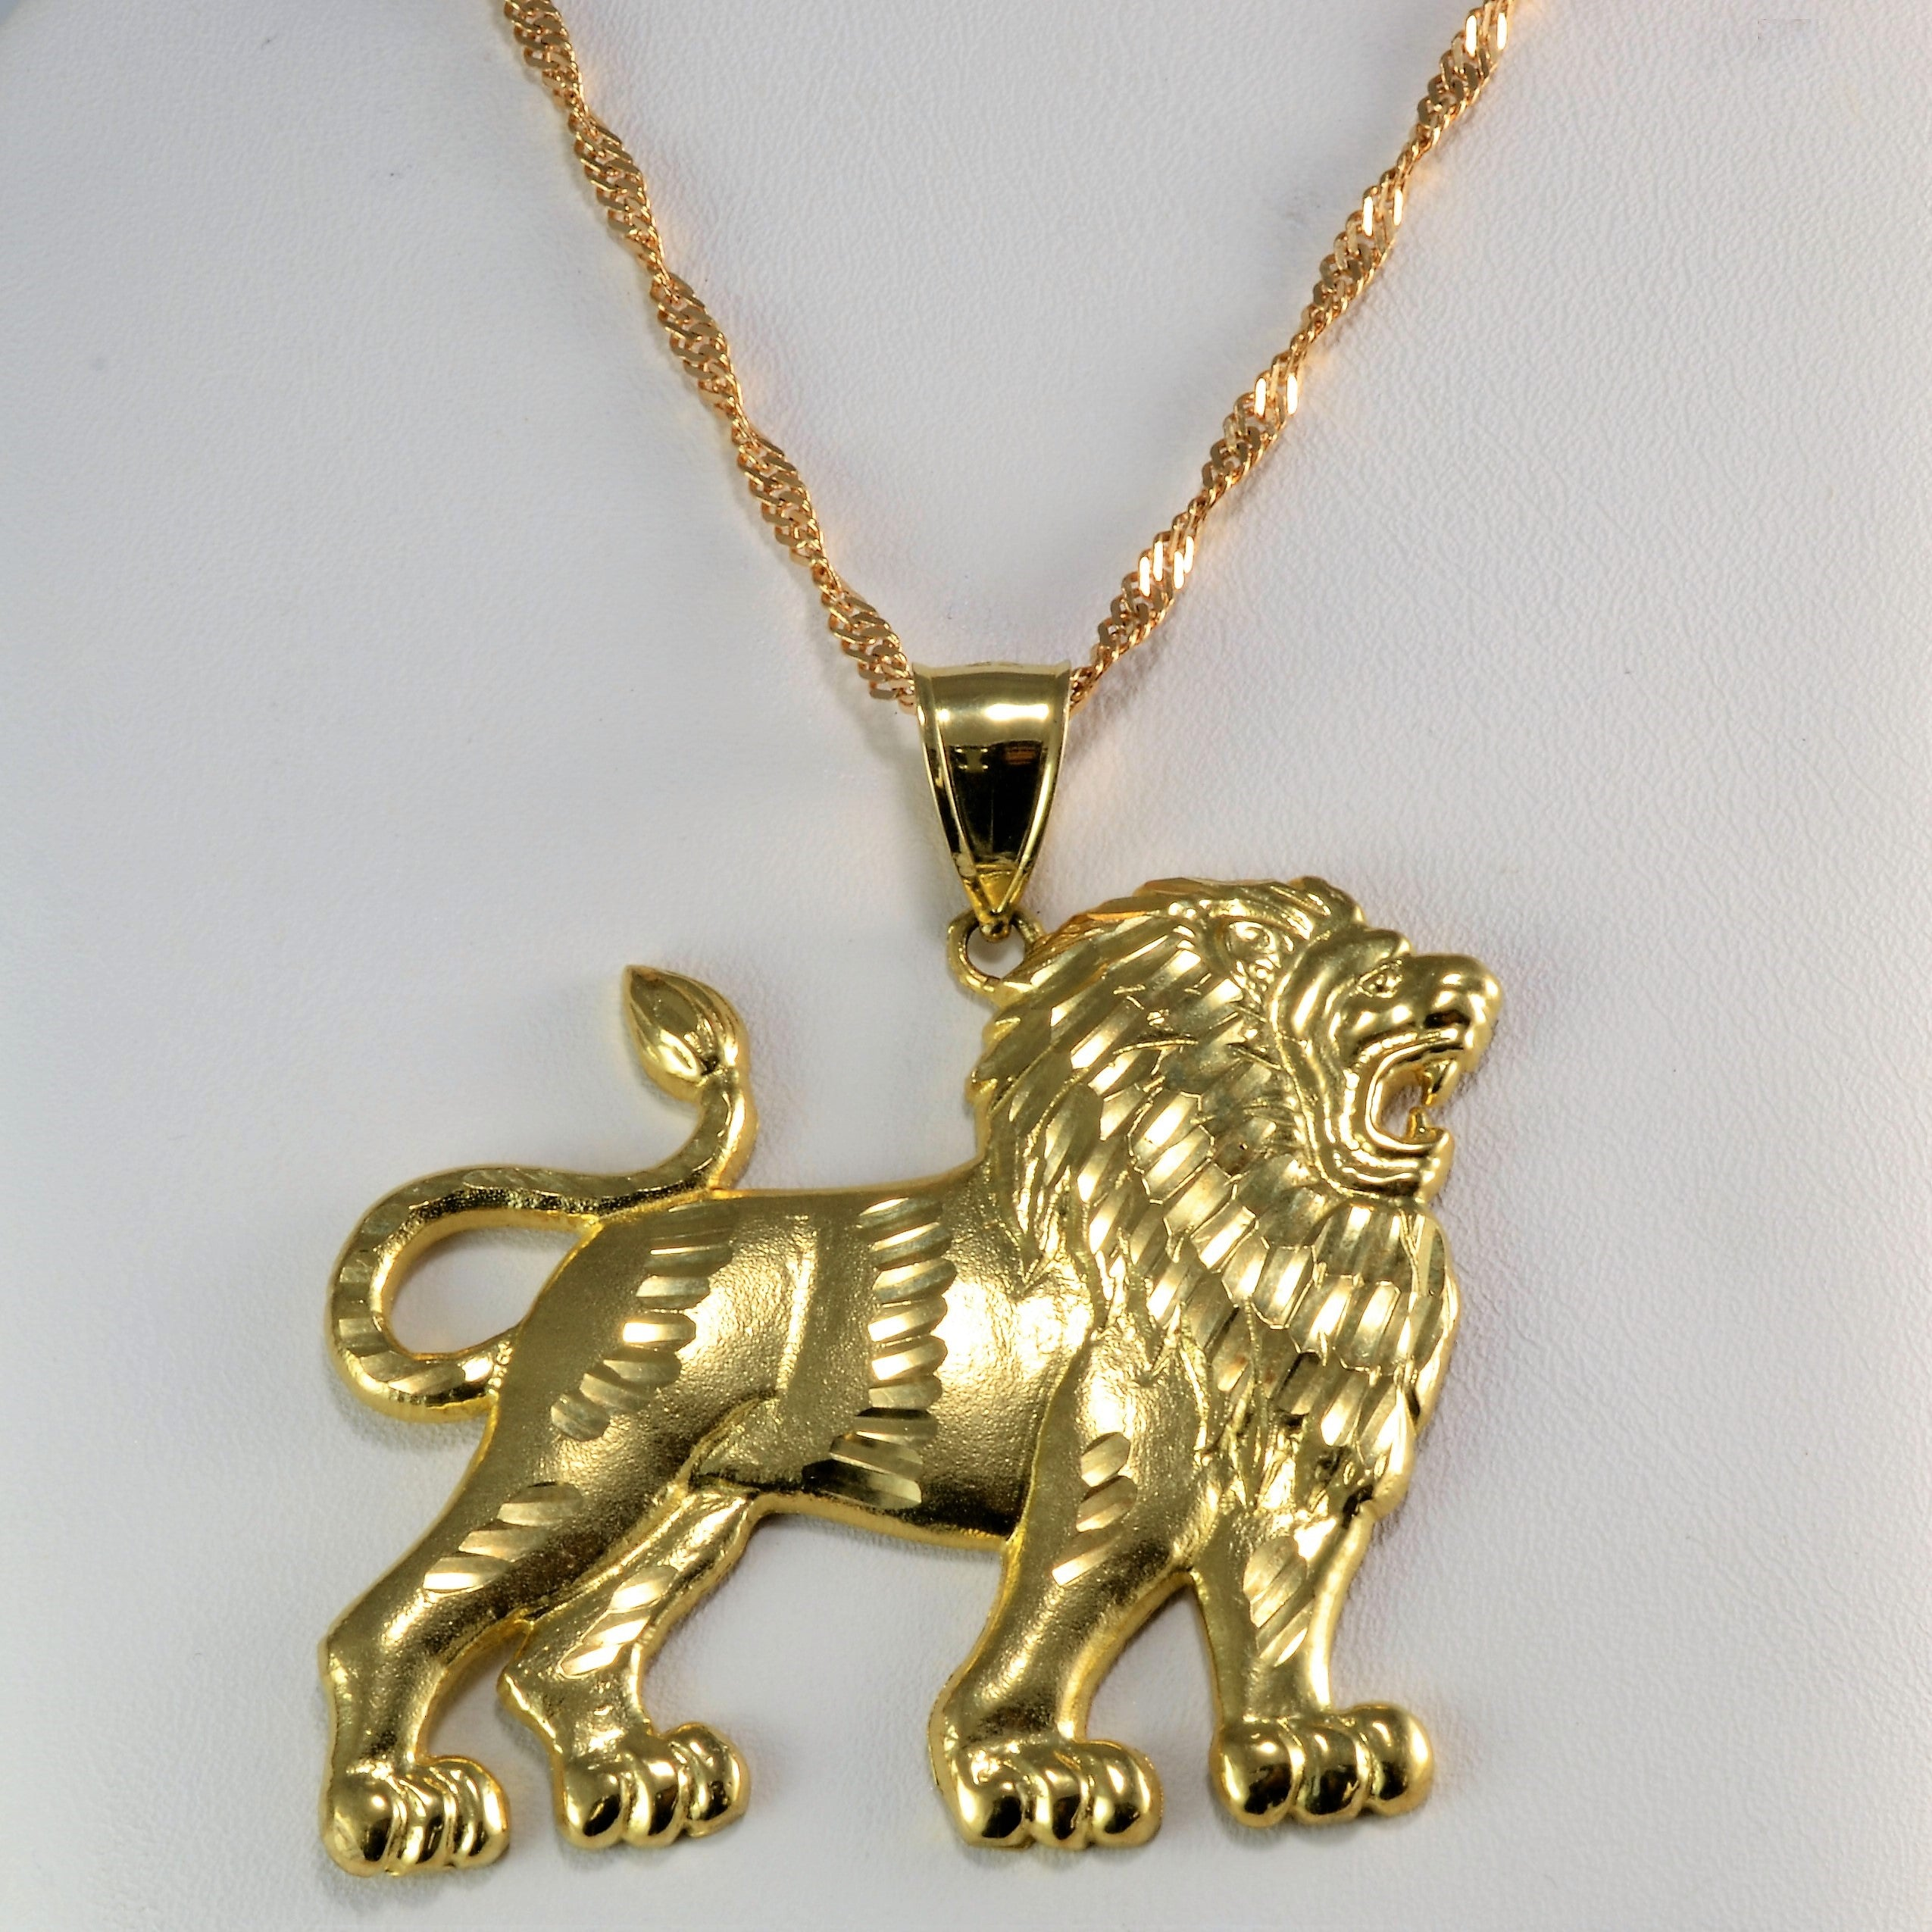 head pendant imported gold jewellery amazon mens dp stainless fashion in steel silver lion jewelry necklace